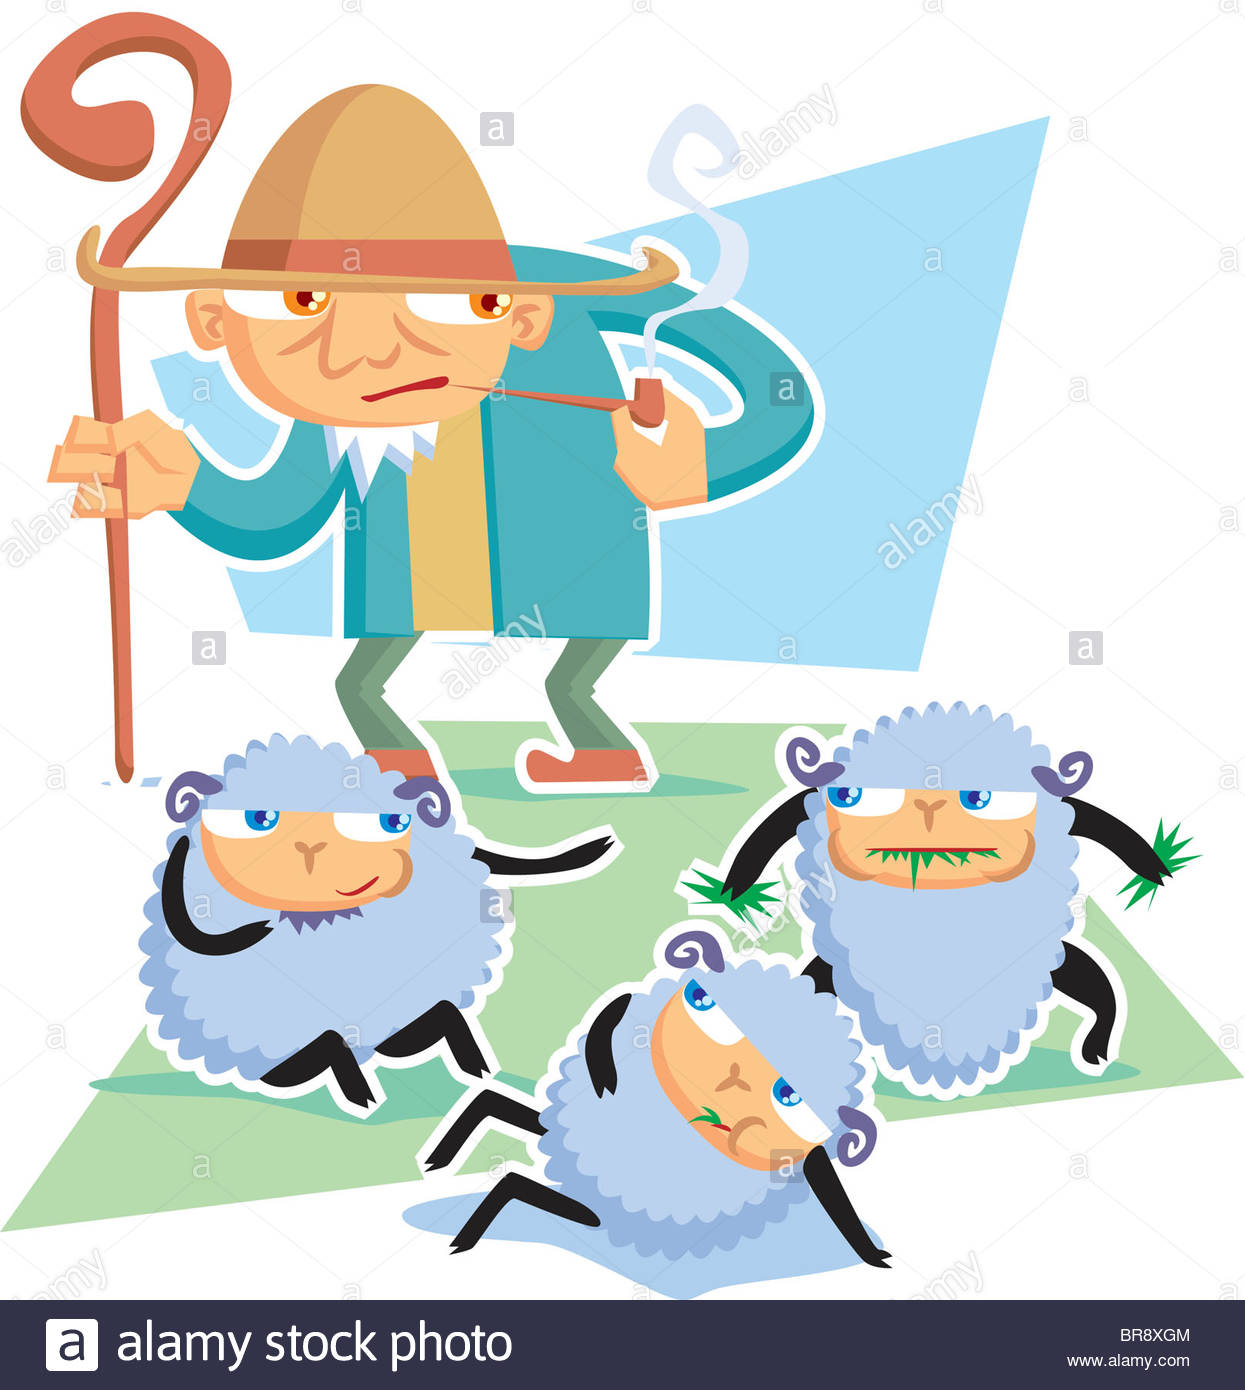 1245x1390 Shepherd Flock Illustration Stock Photos Amp Shepherd Flock